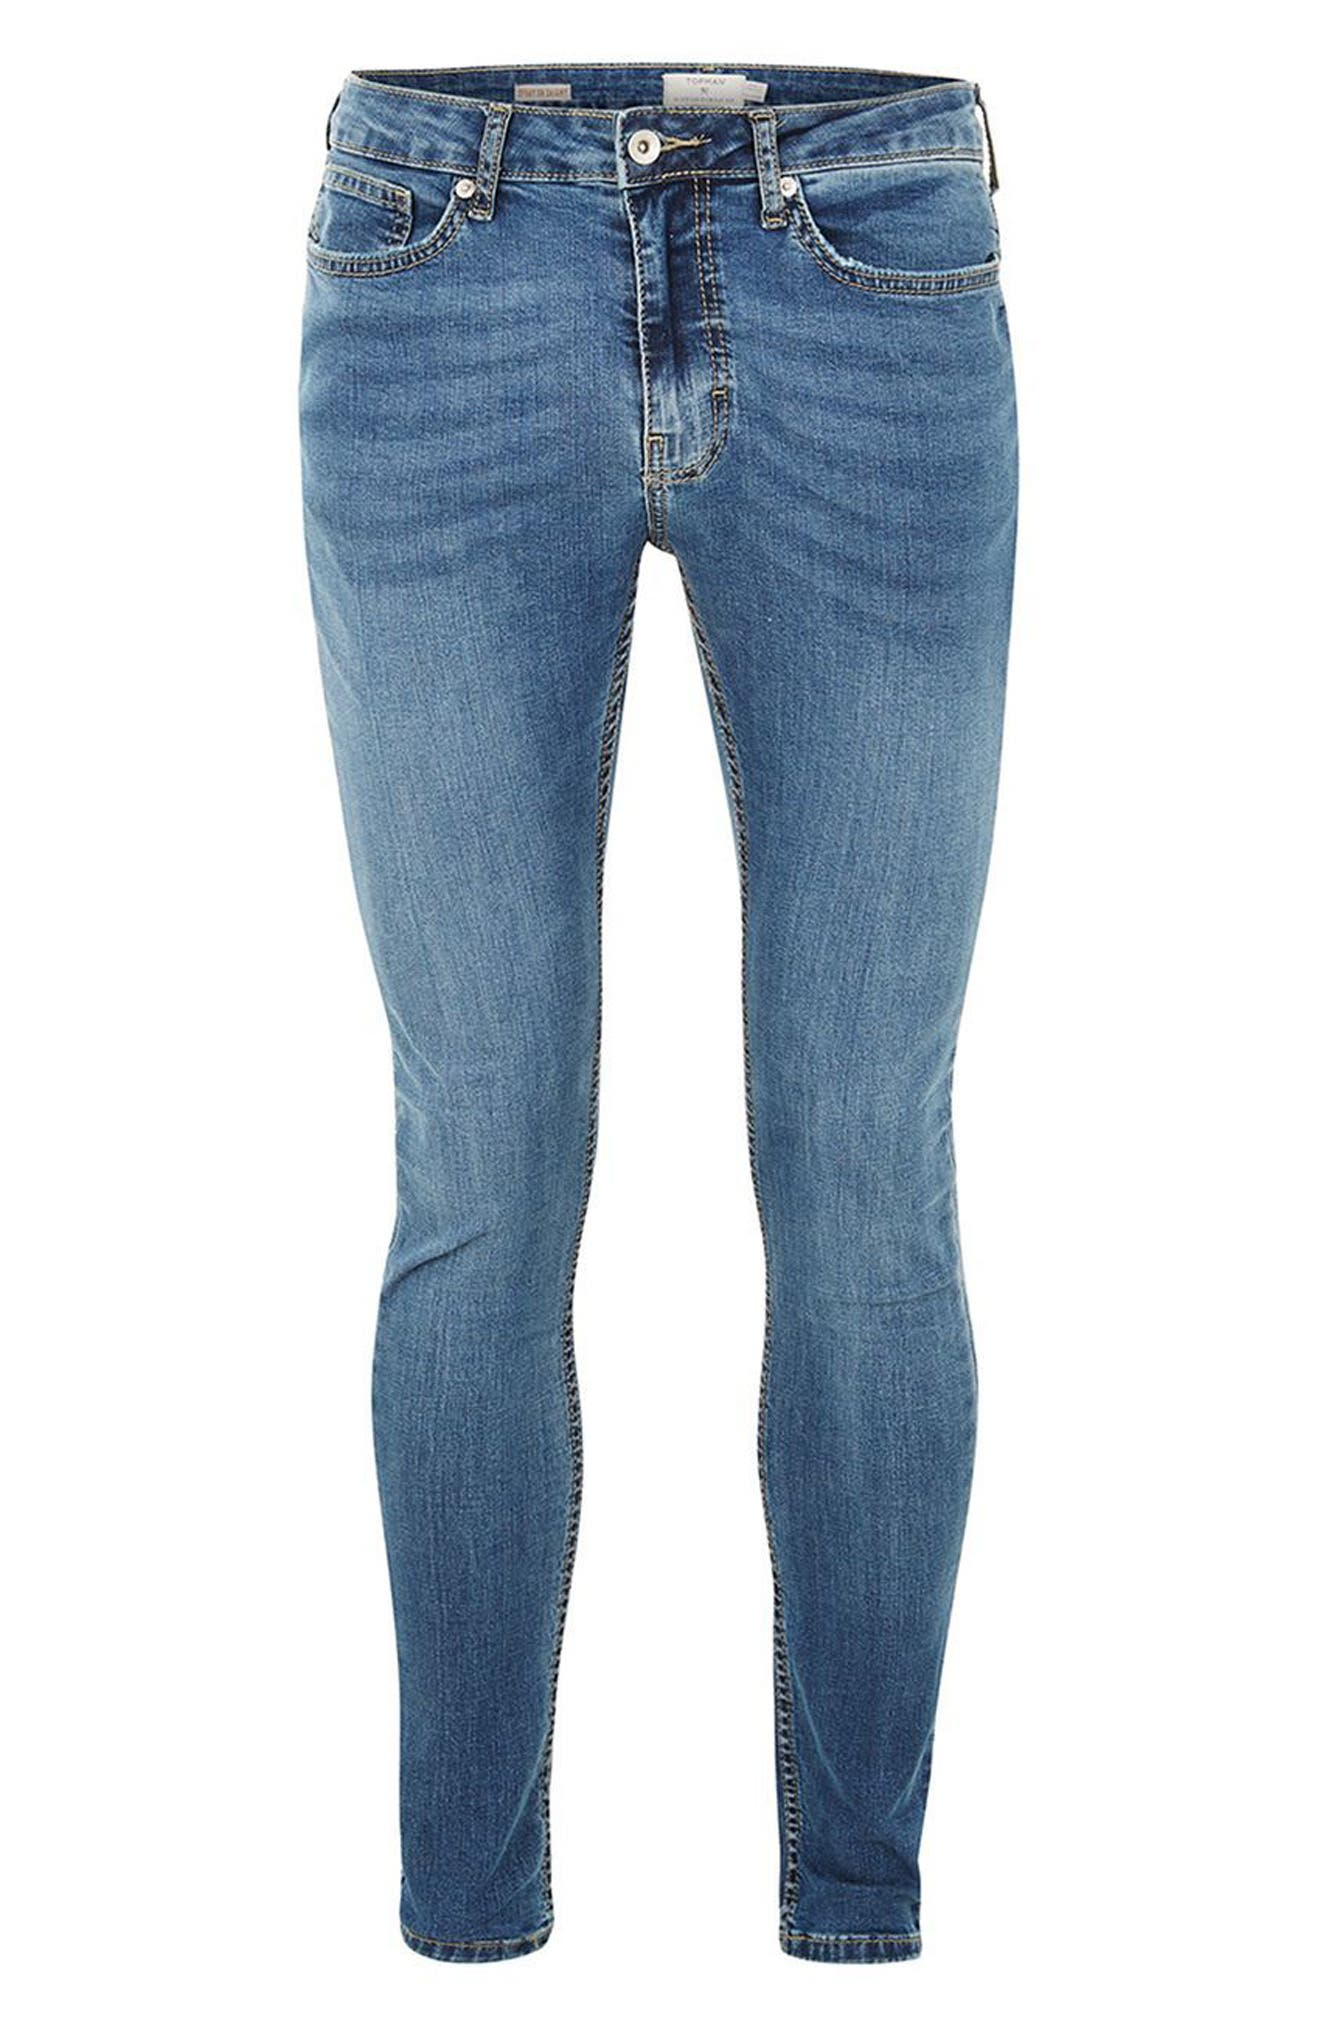 Skinny Fit Spray-On Jeans,                             Alternate thumbnail 4, color,                             Blue